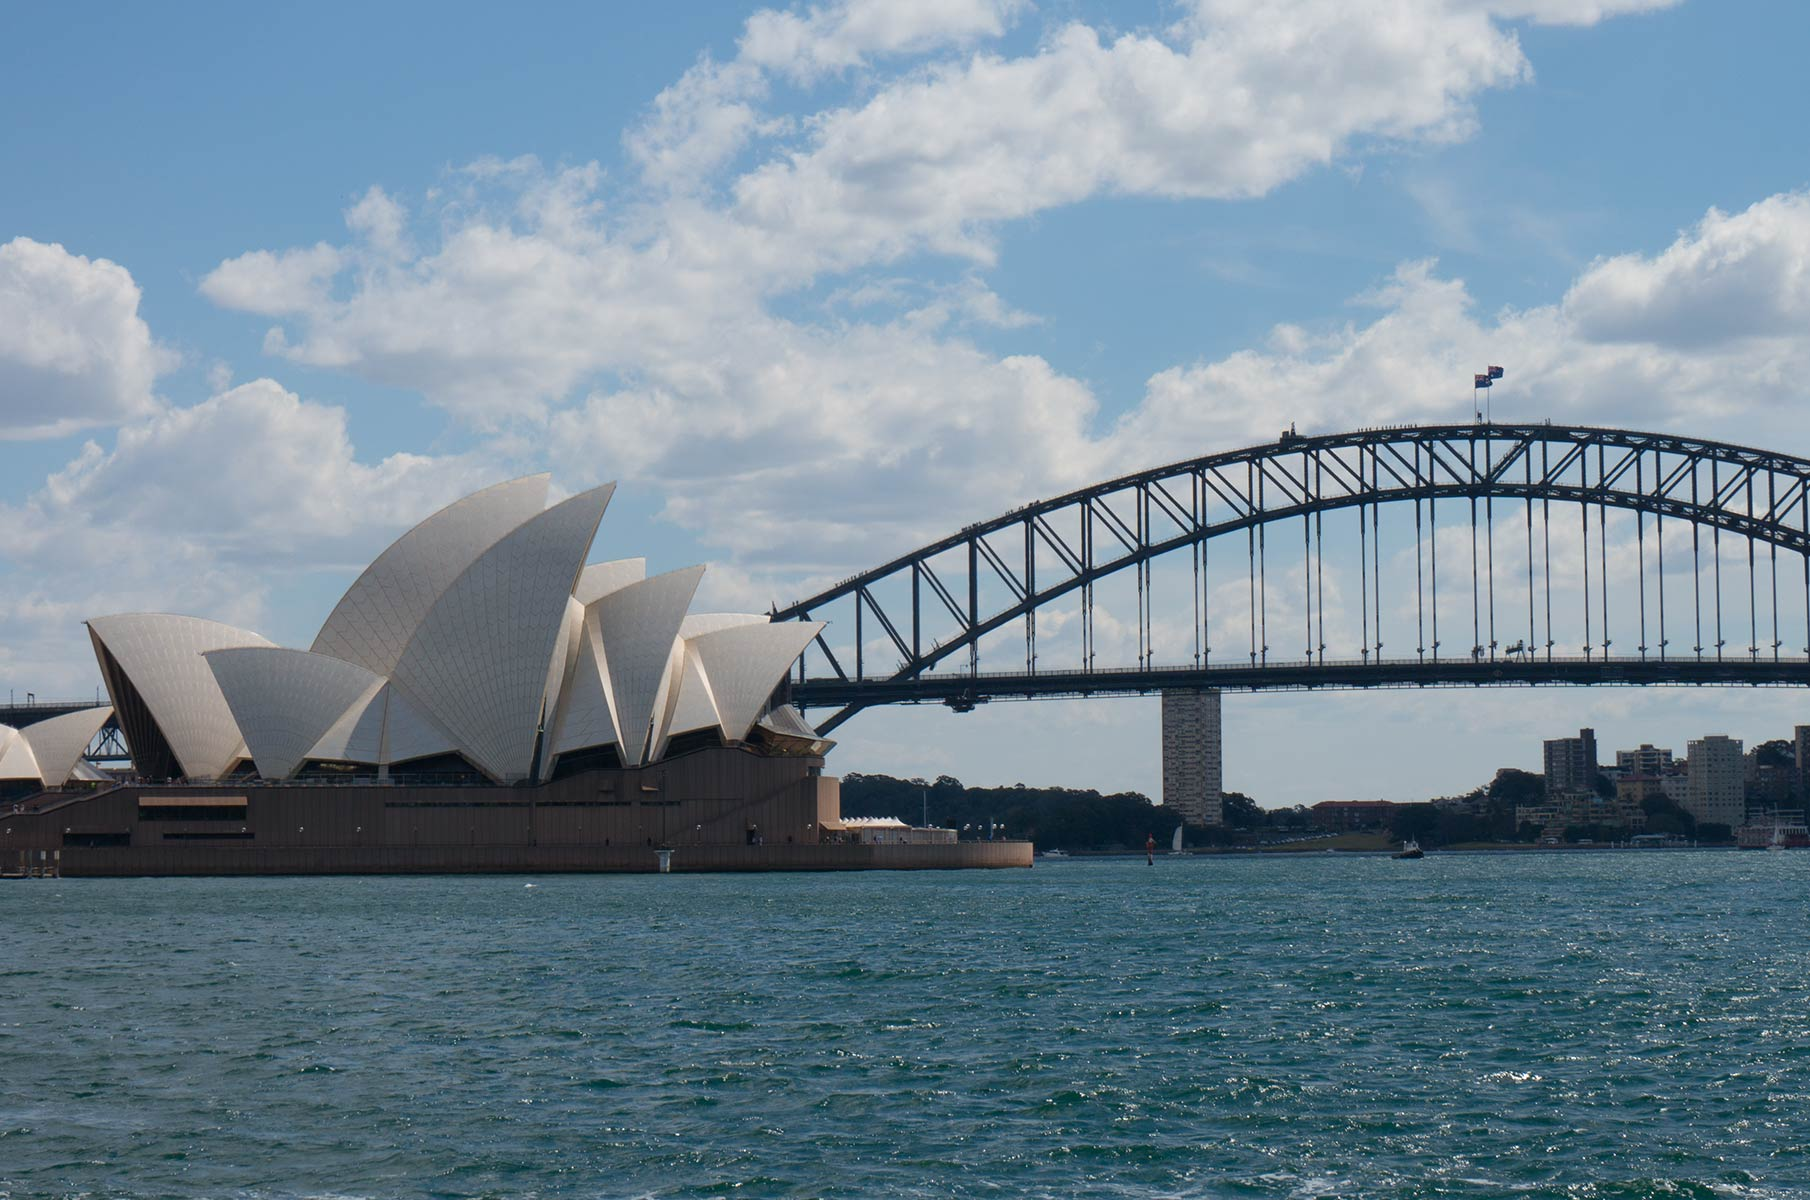 Sydney Opera House Opernhaus und Harbour Bay Bridge, Australien